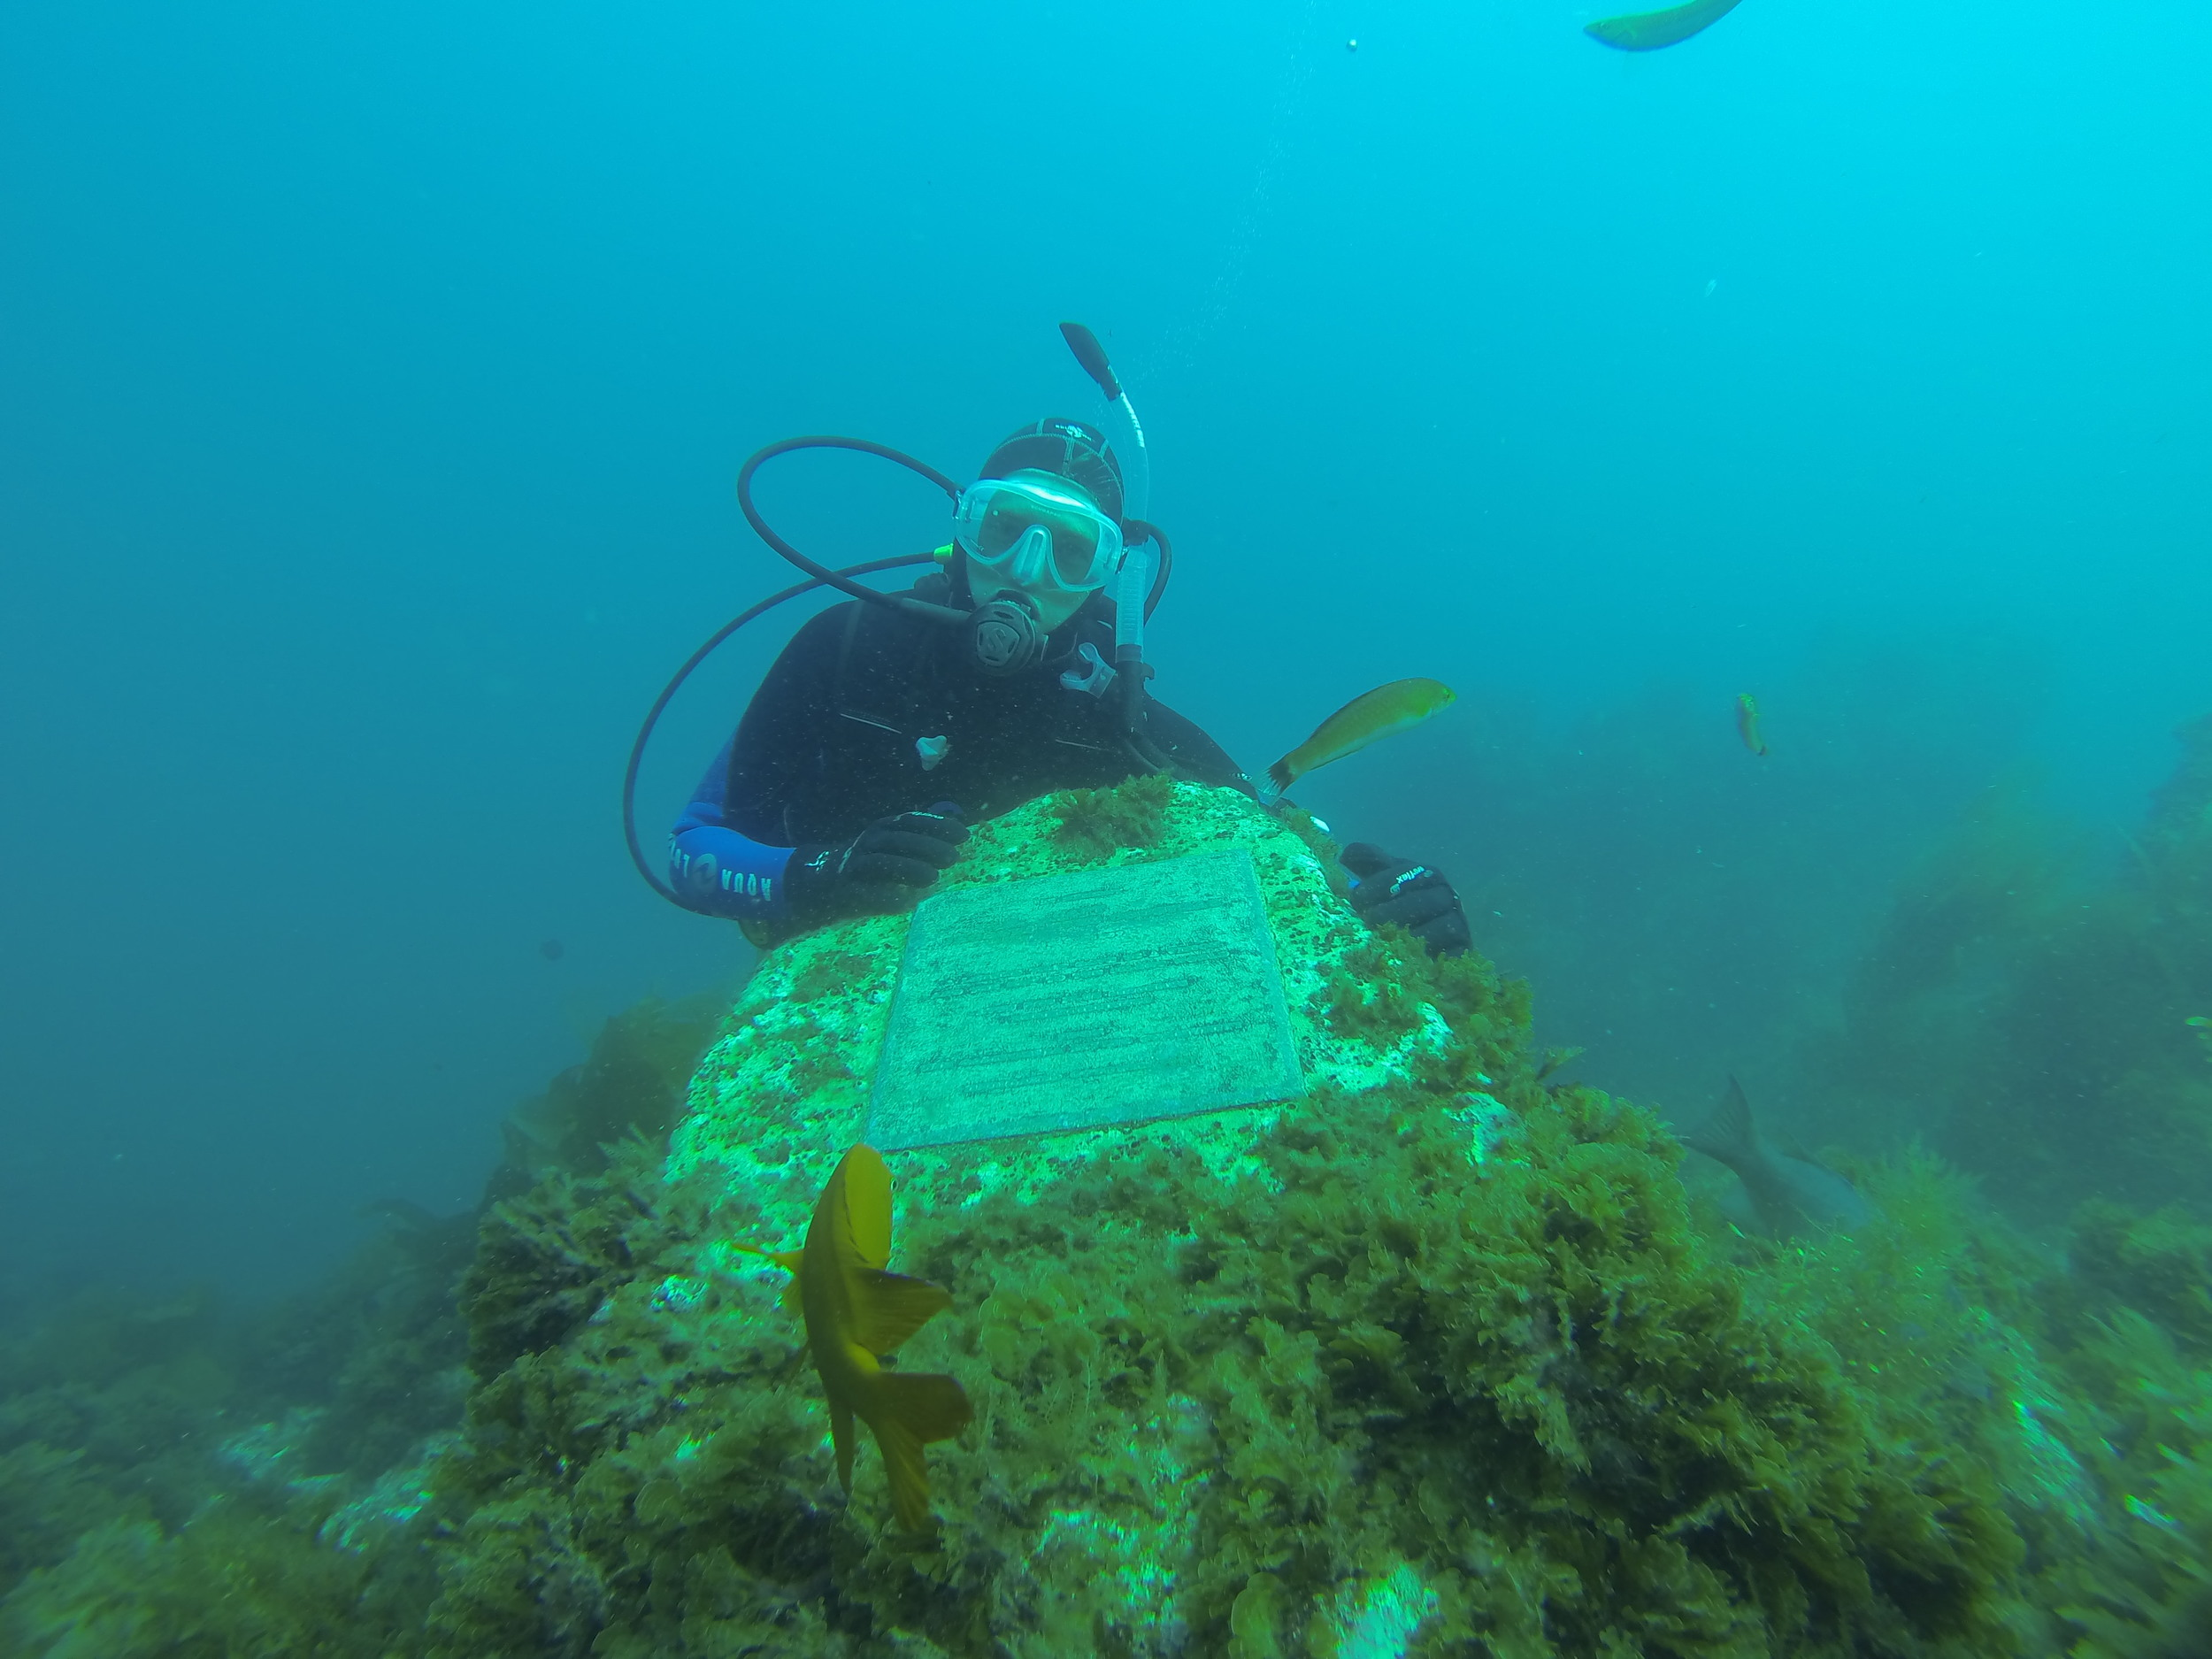 """The plaque, dedicated in October 1997 by members of the California diving community, reads:        0   0   1   1   Spooner   1   1   1   14.0                       Normal   0           false   false   false     EN-US   JA   X-NONE                                                                                                                                                                                                                                                                                                                                                                               /* Style Definitions */ table.MsoNormalTable {mso-style-name:""""Table Normal""""; mso-tstyle-rowband-size:0; mso-tstyle-colband-size:0; mso-style-noshow:yes; mso-style-priority:99; mso-style-parent:""""""""; mso-padding-alt:0in 5.4pt 0in 5.4pt; mso-para-margin:0in; mso-para-margin-bottom:.0001pt; mso-pagination:widow-orphan; font-size:12.0pt; font-family:Cambria; mso-ascii-font-family:Cambria; mso-ascii-theme-font:minor-latin; mso-hansi-font-family:Cambria; mso-hansi-theme-font:minor-latin;}       """"   IN MEMORY: CAPT. JACQUES YVES COUSTEAU, 1910–1997: A LEGEND THAT GAVE US A VISION AND THE KEY TO THE SILENT WORLD.  """""""